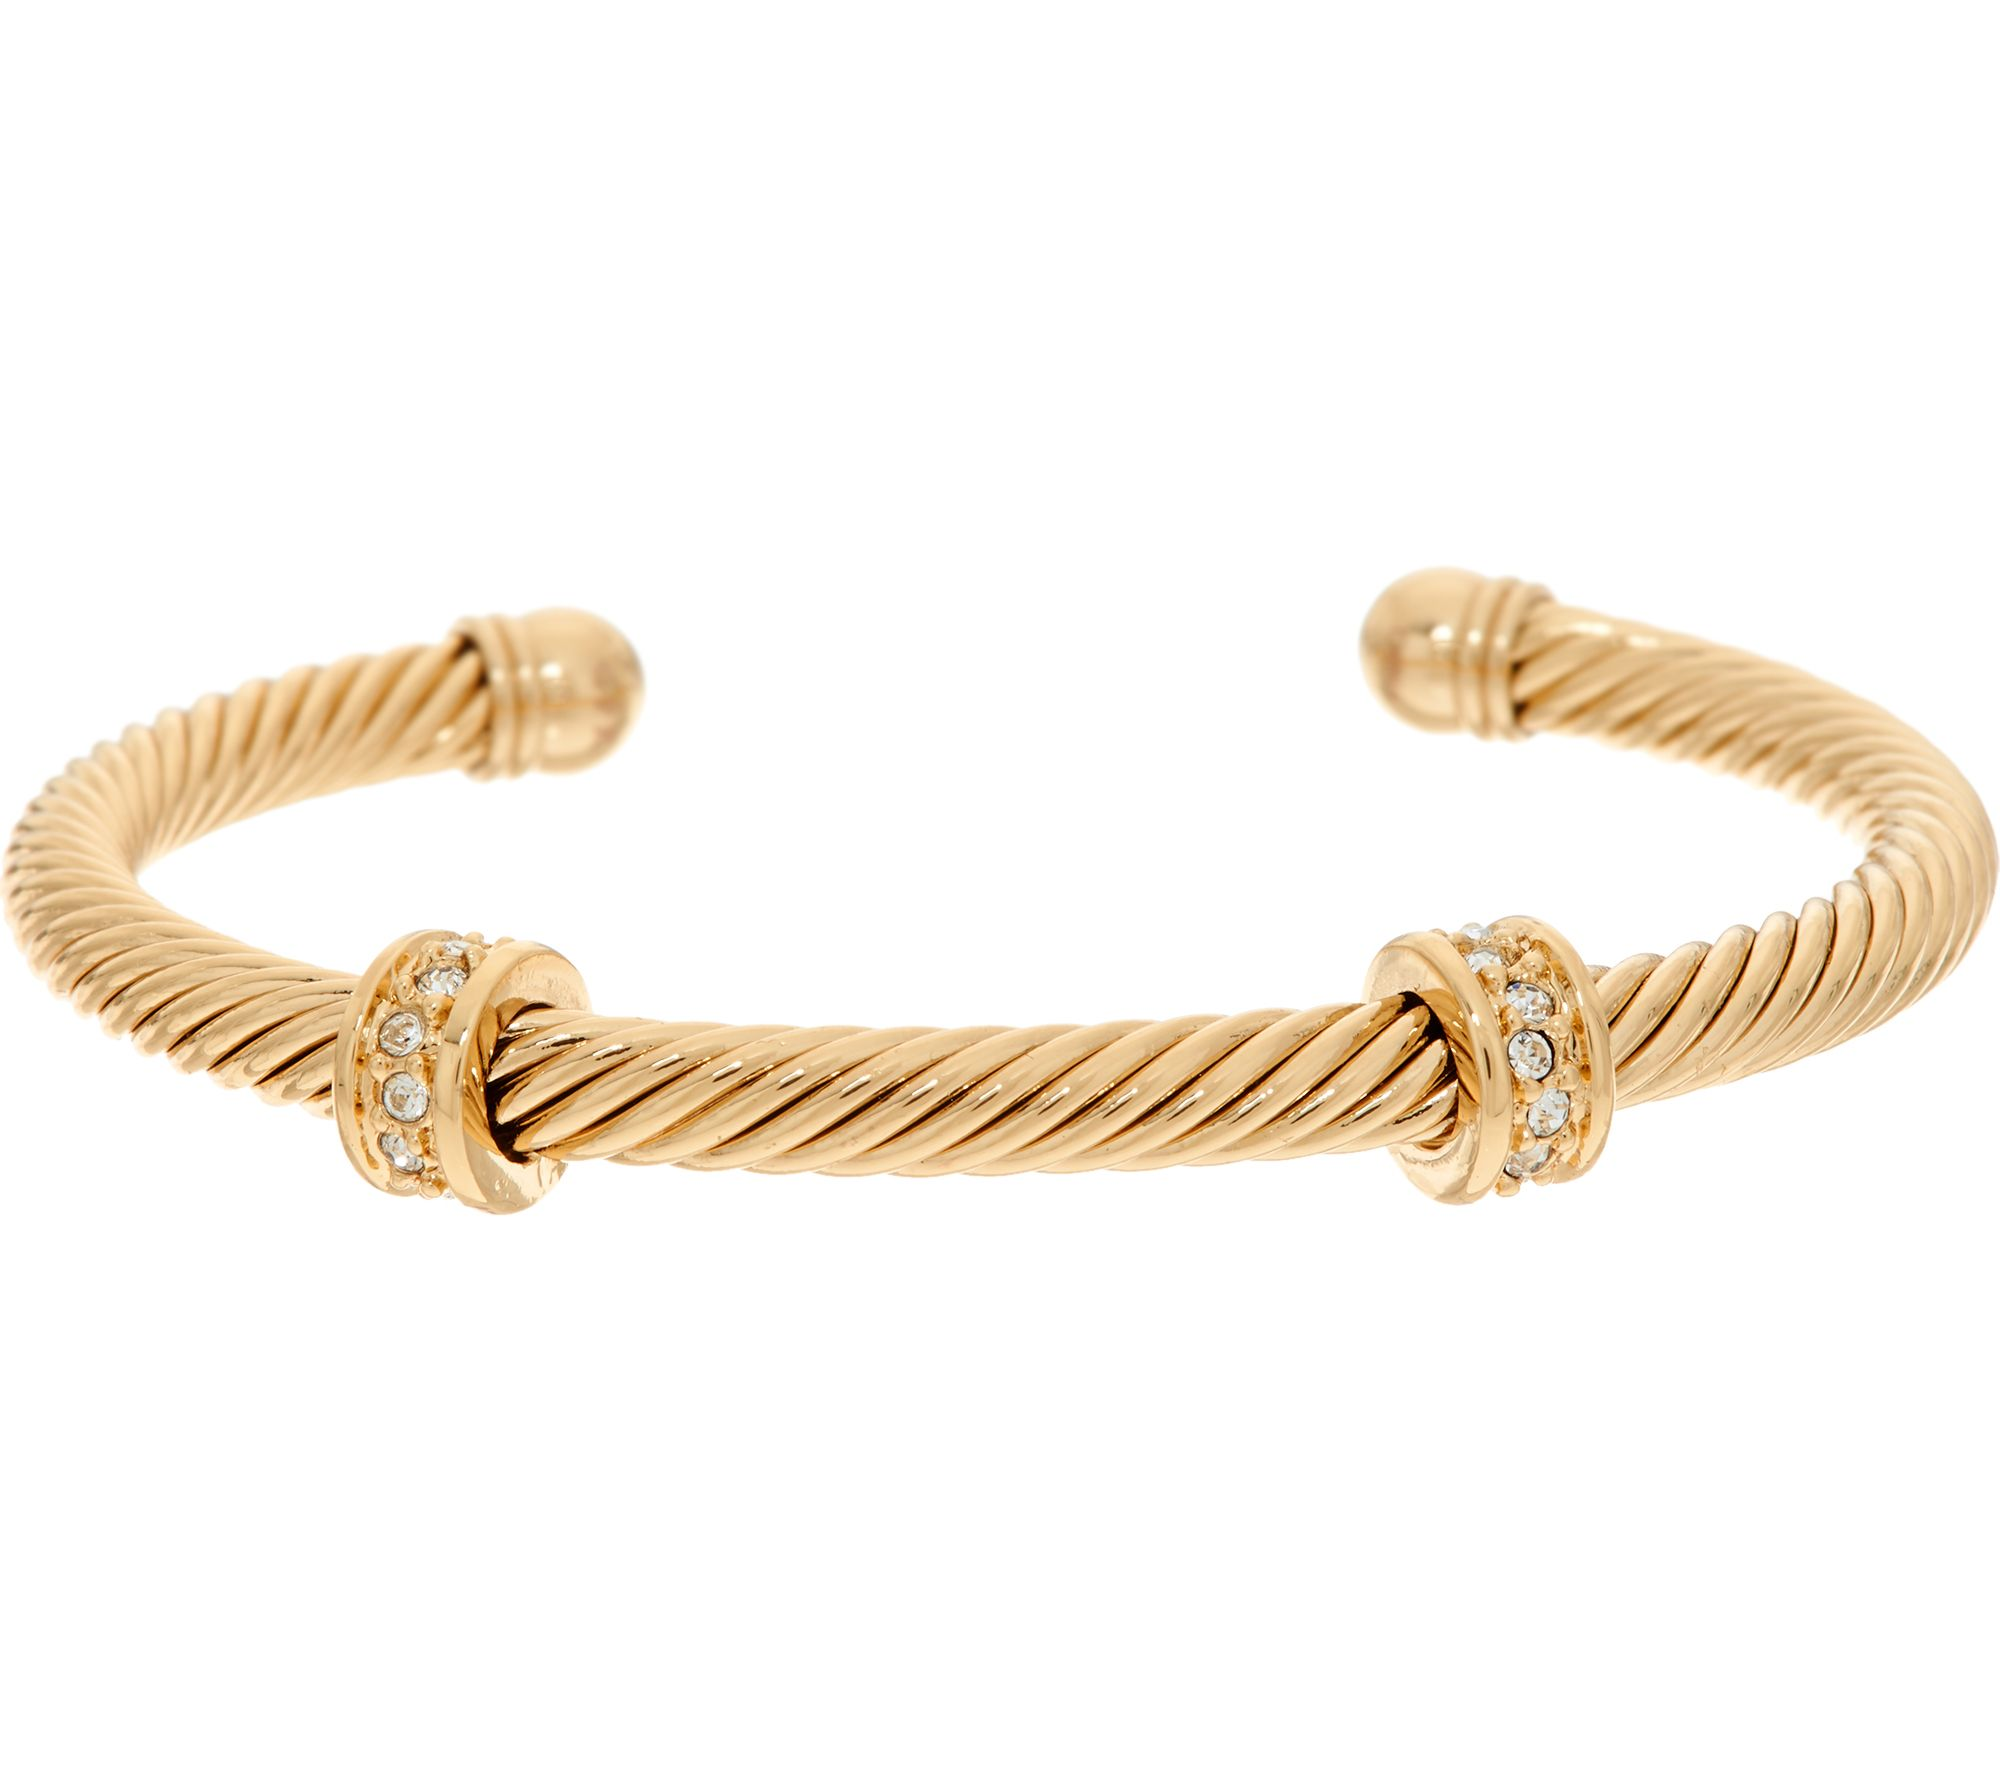 gpji bracelets men s com jewelry goldpalace d k page mens ctgy gold mj bracelet